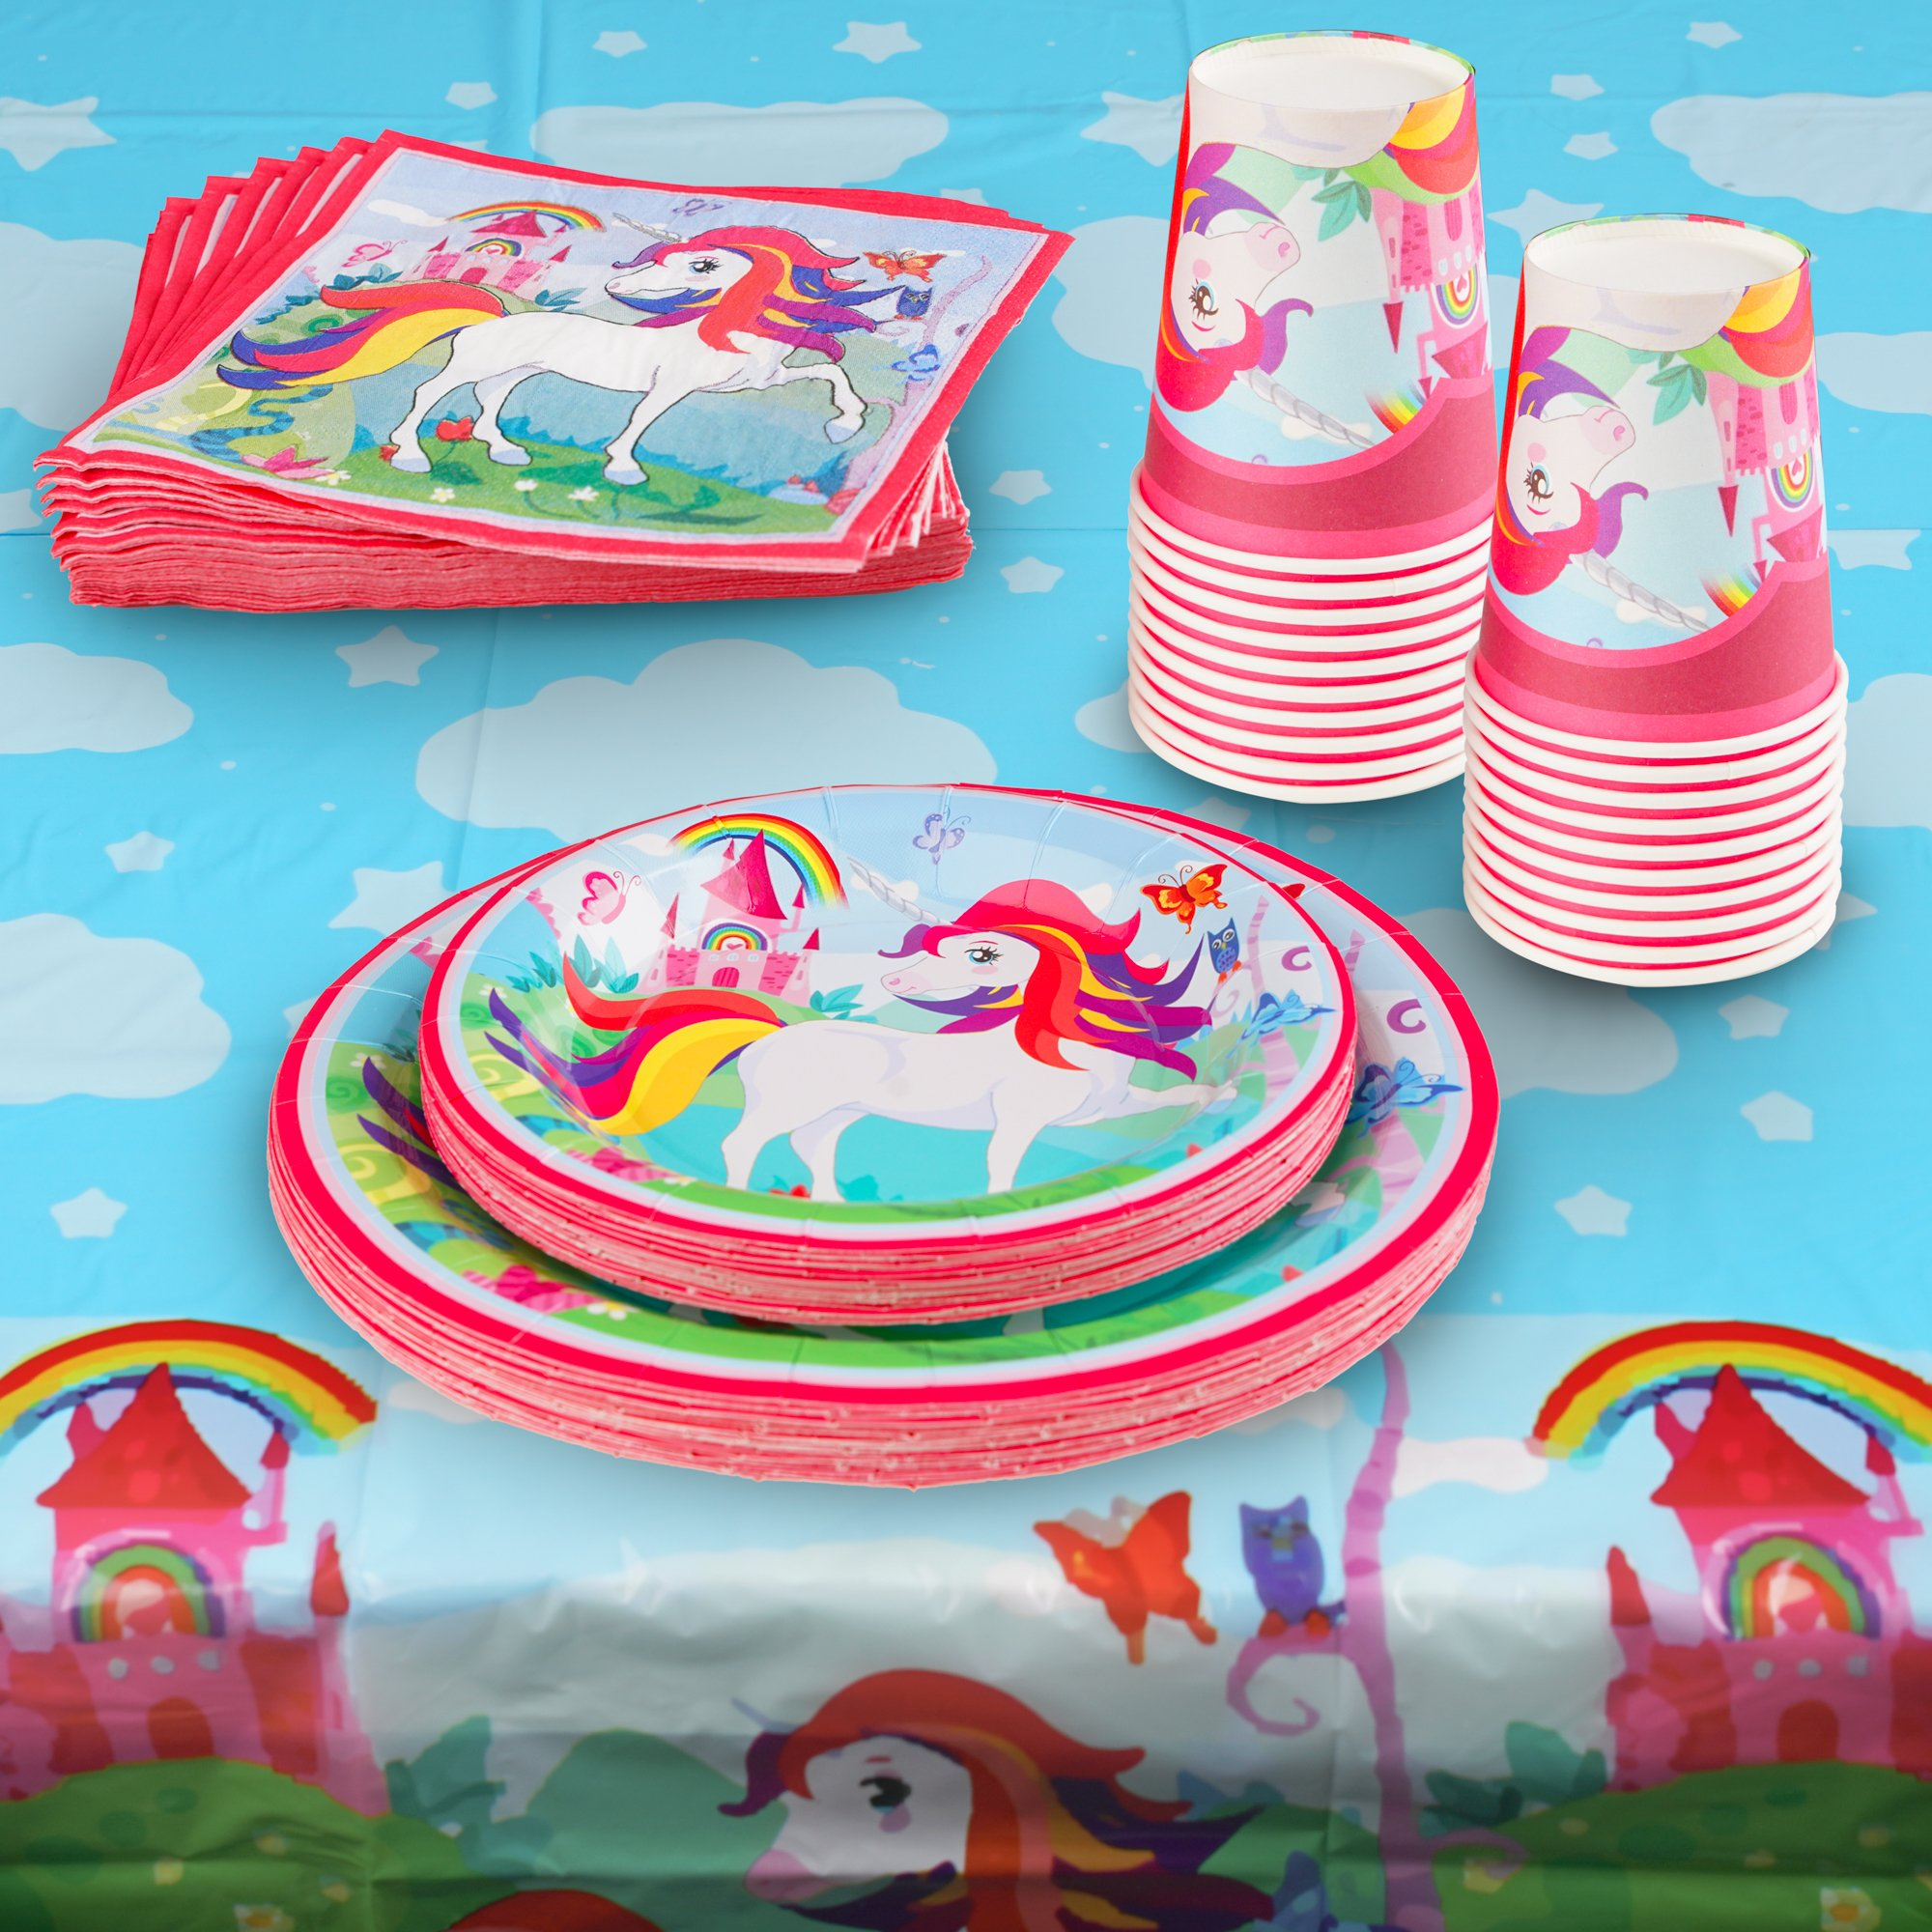 82 Piece Unicorn Party Supplies Set Including Banner, Plates, Cups, Napkins and Tablecloth, Serves 20 by Scale Rank (Image #3)